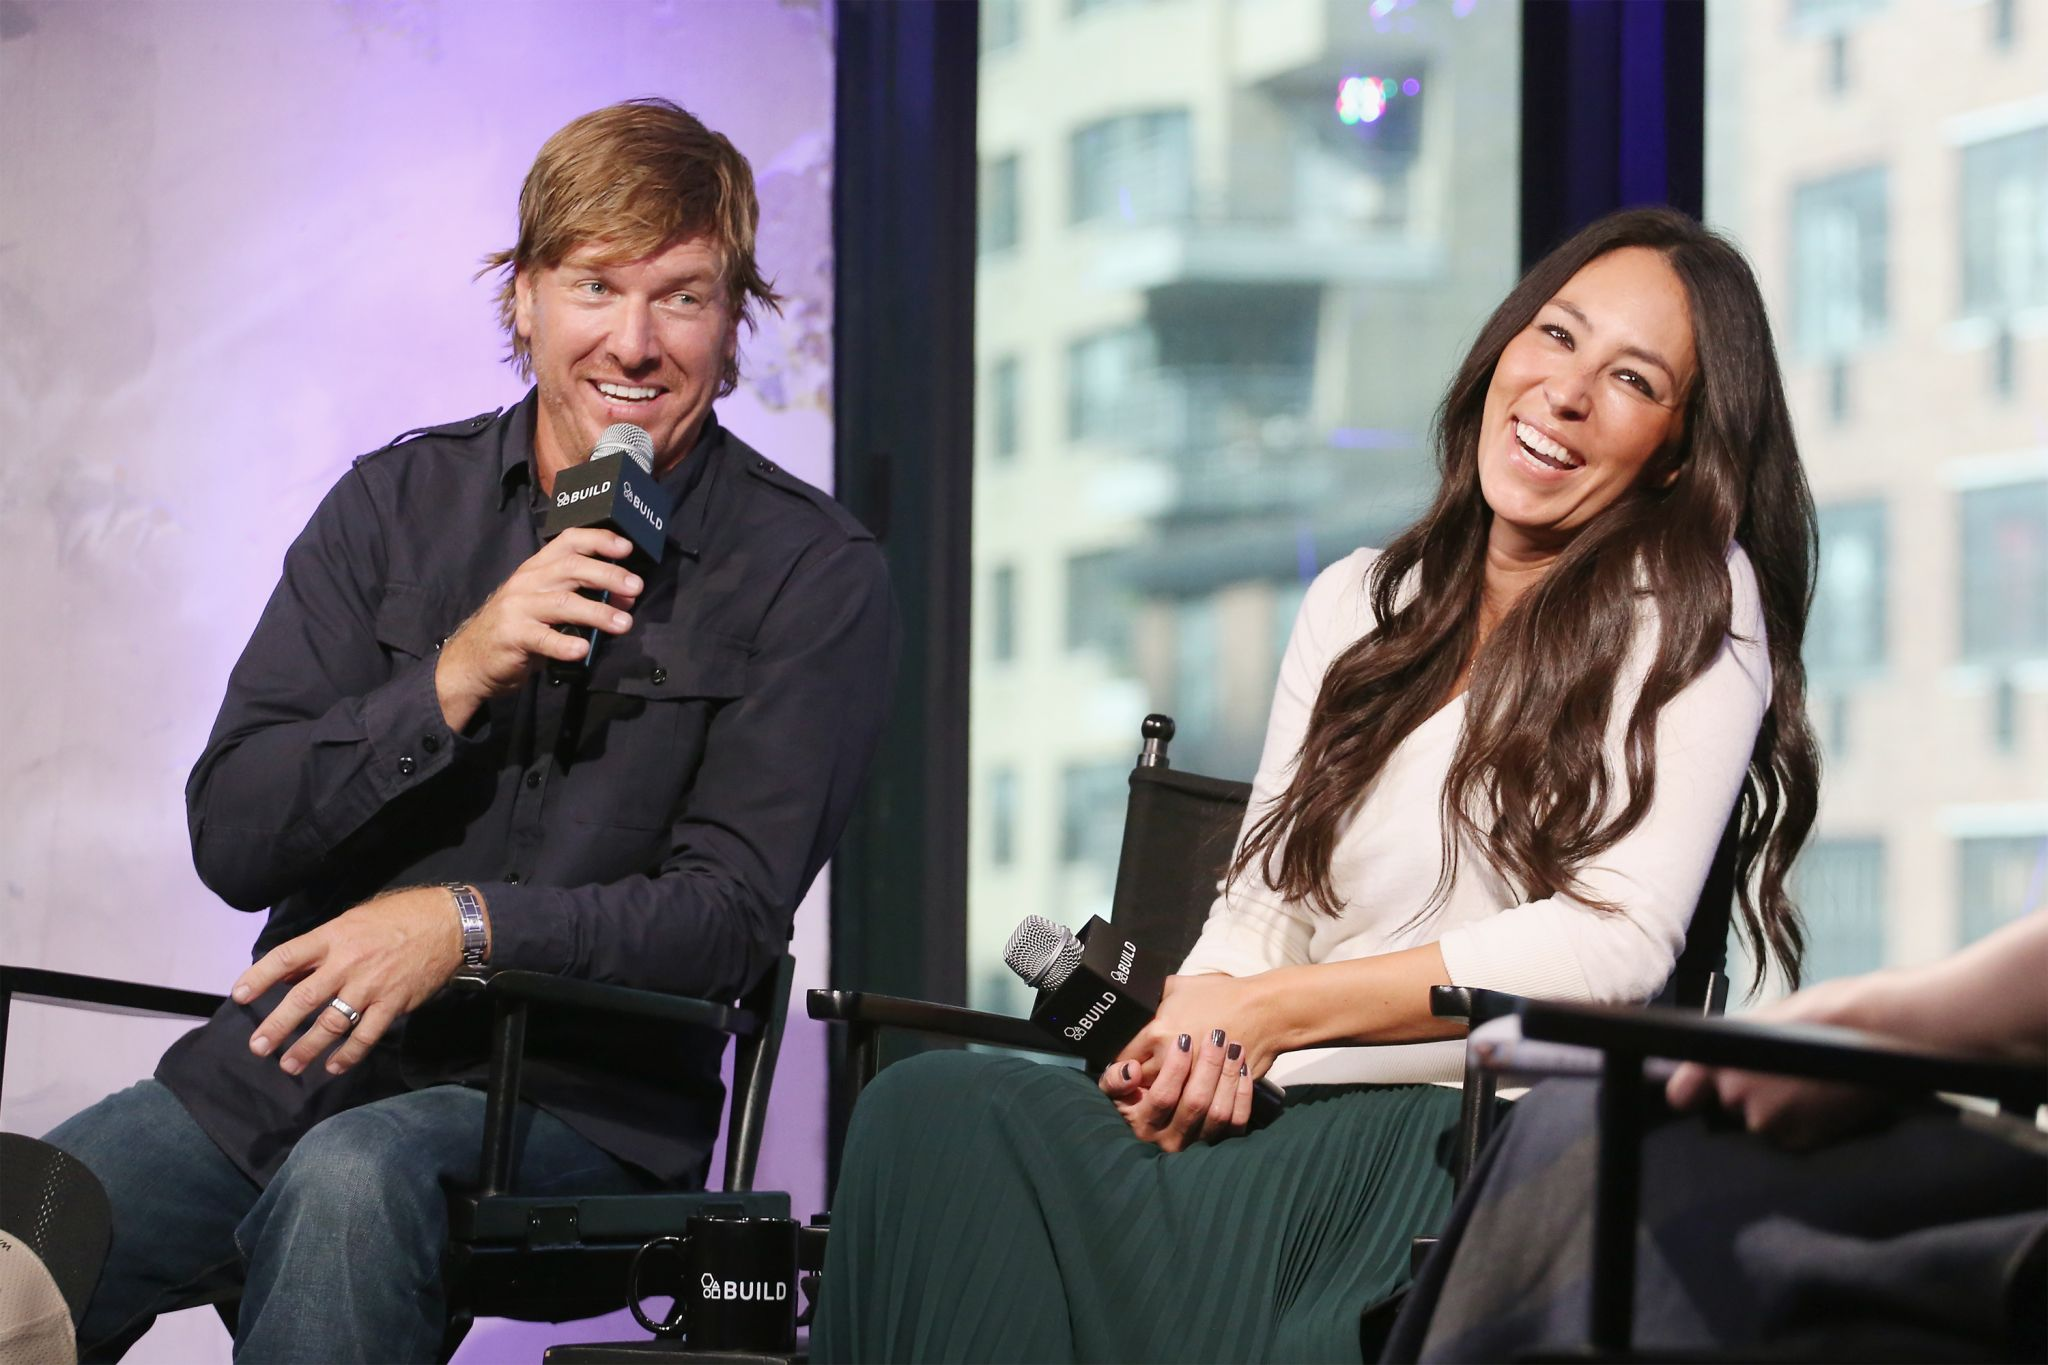 Fake Joanna Gaines skin care line fooling people into handing over hundreds in cash